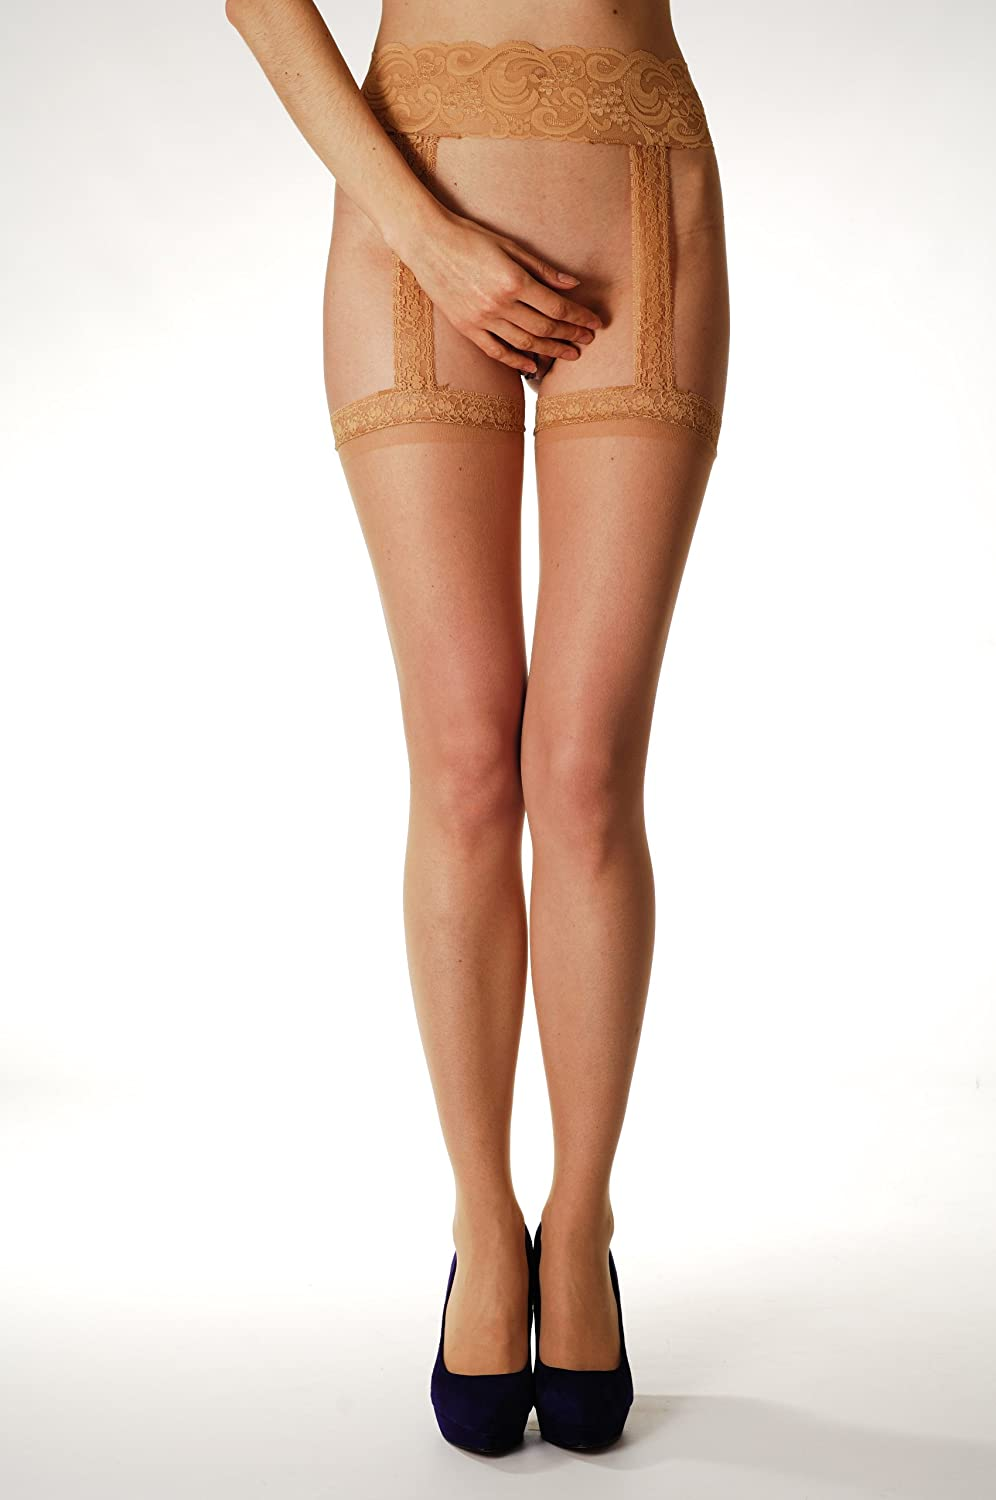 Nude Seamed Stockings with Attached Suspender Belt (plus size) - Stockings